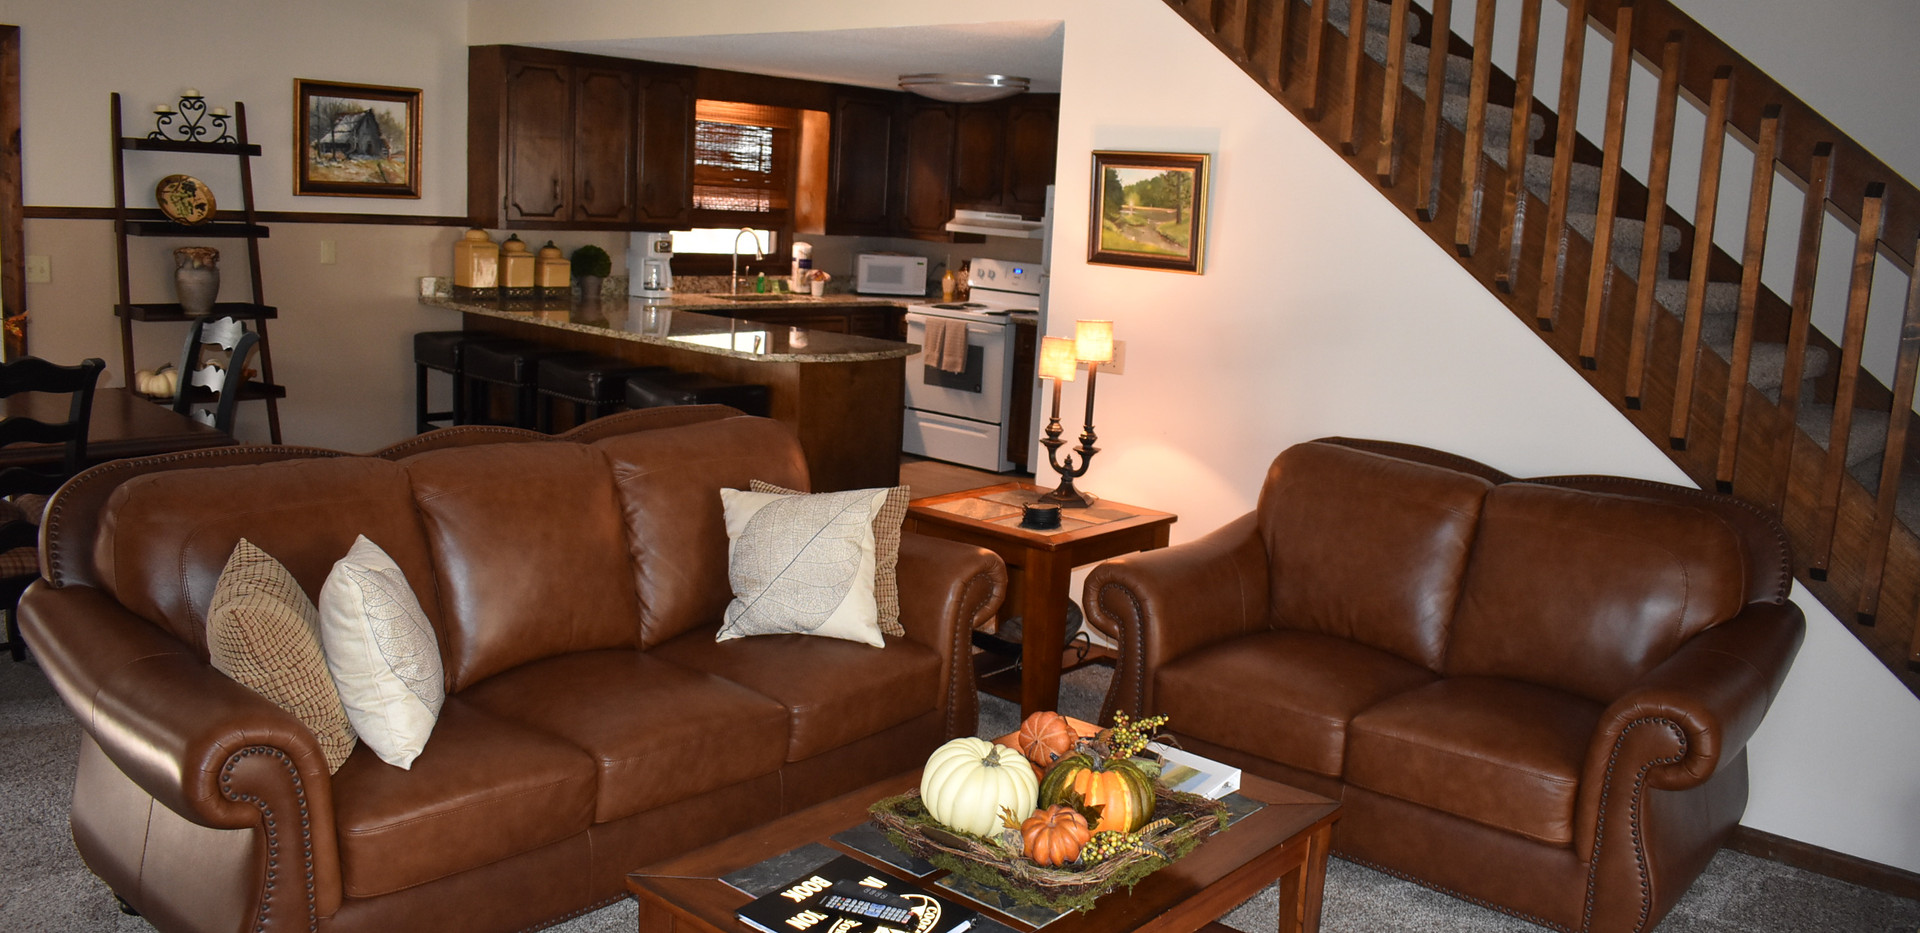 3 BR - Lodge - Living Room & Kitchen